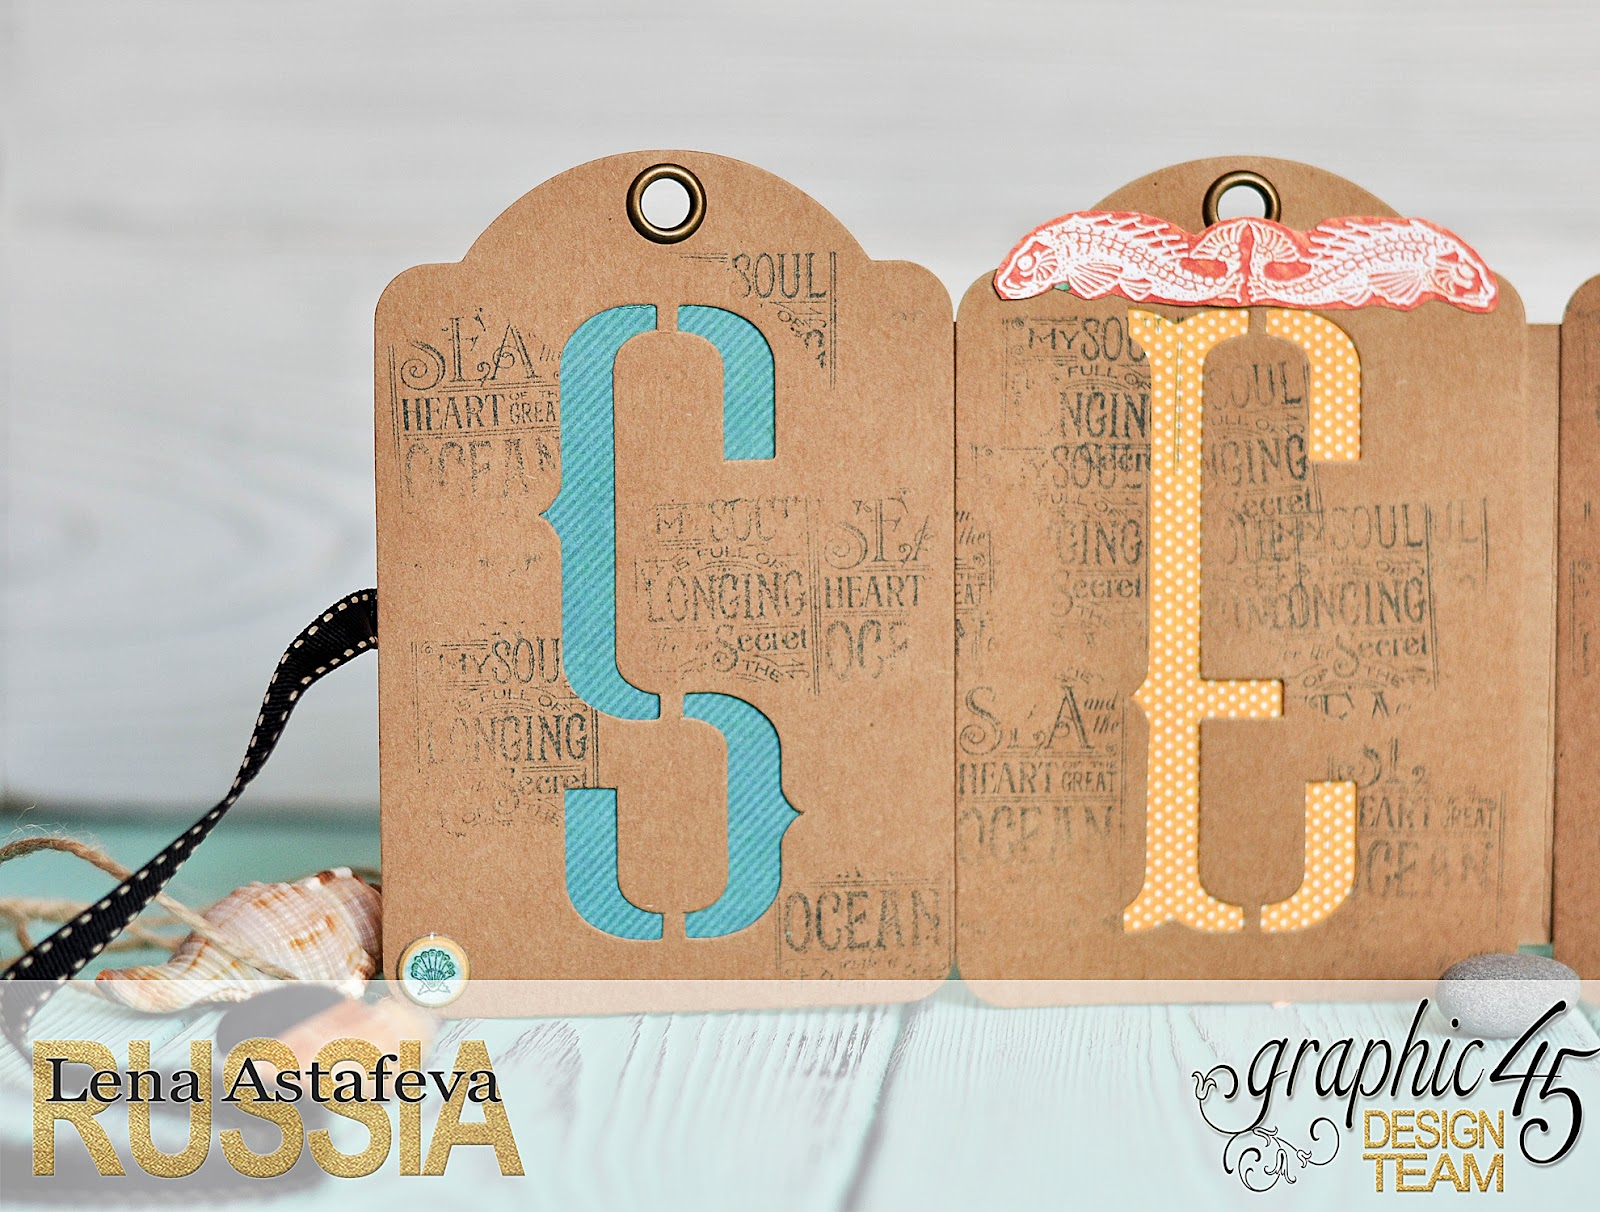 Tags-tutorial by Lena Astafeva-products by Graphic 45-48.jpg